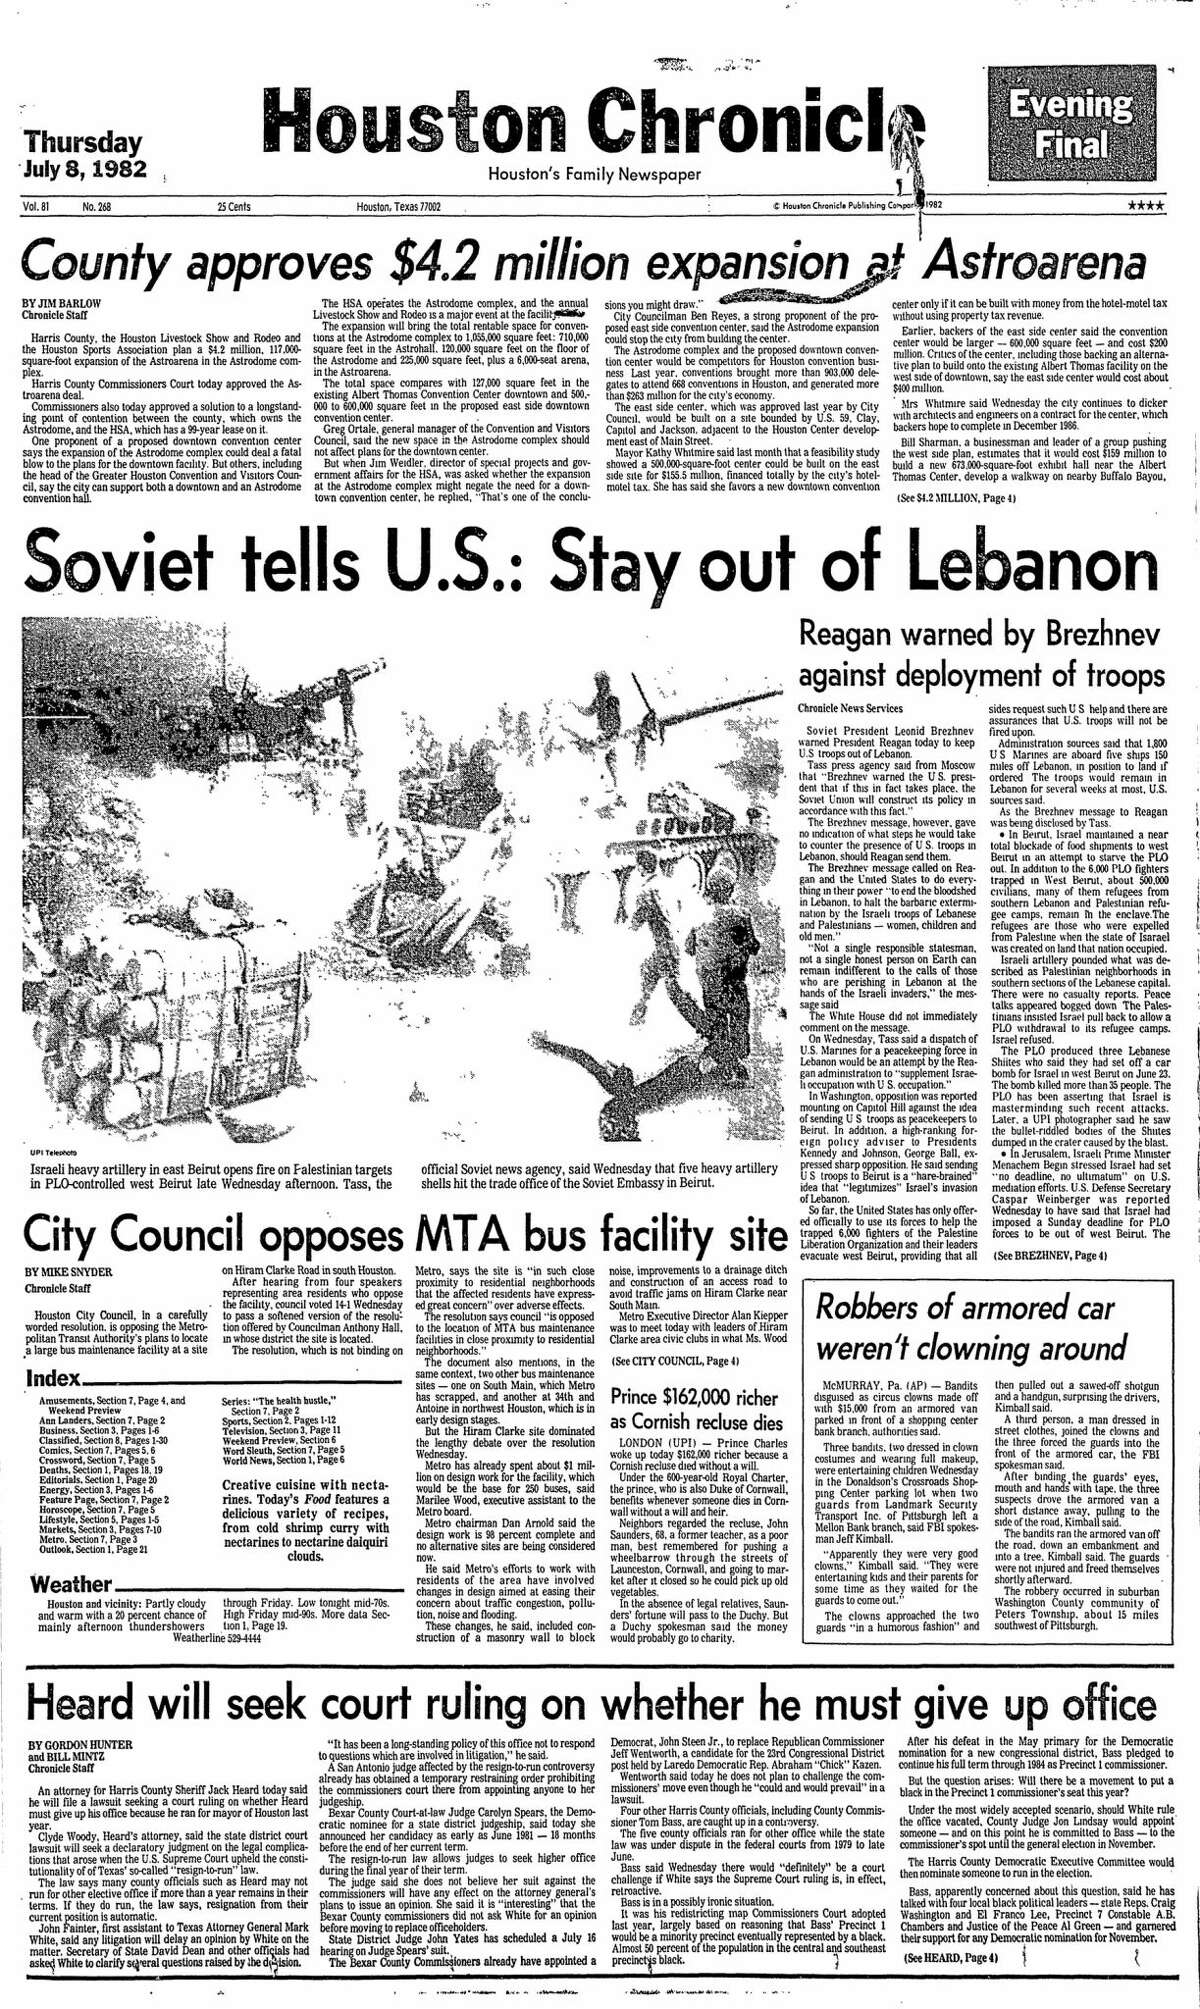 Houston Chronicle front page from July 8, 1982.